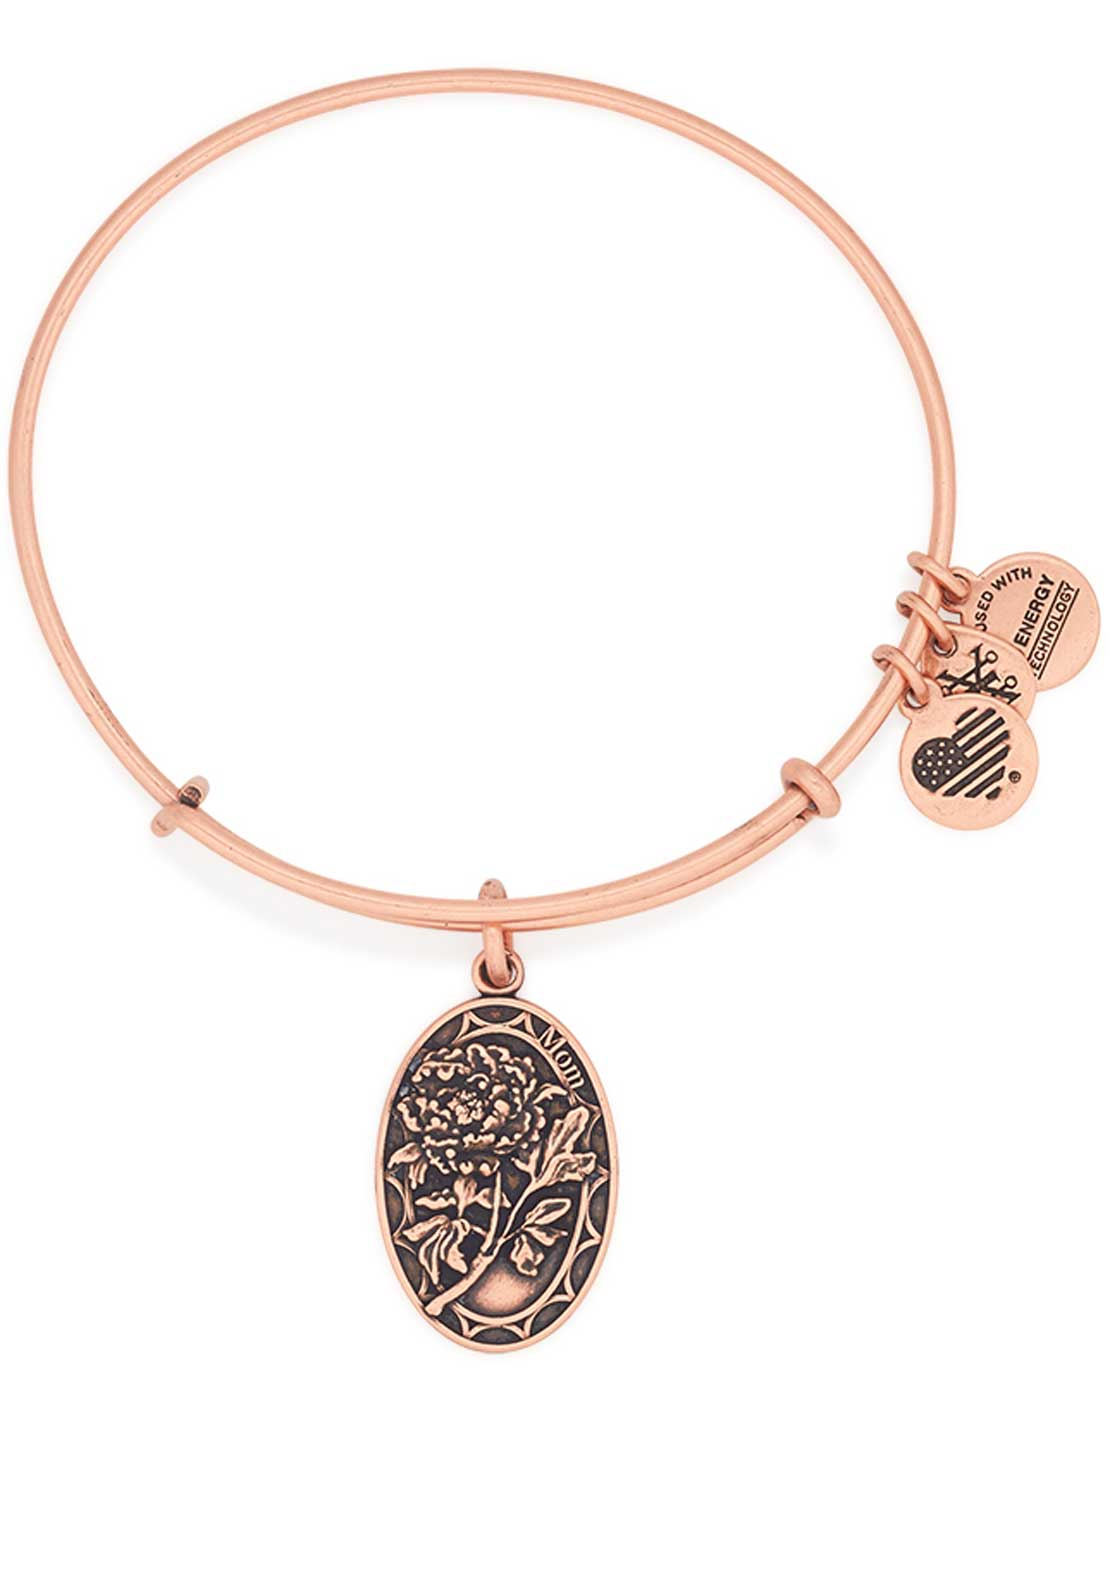 Alex and Ani Because I Love You Mom Peony Bracelet, Rose Gold